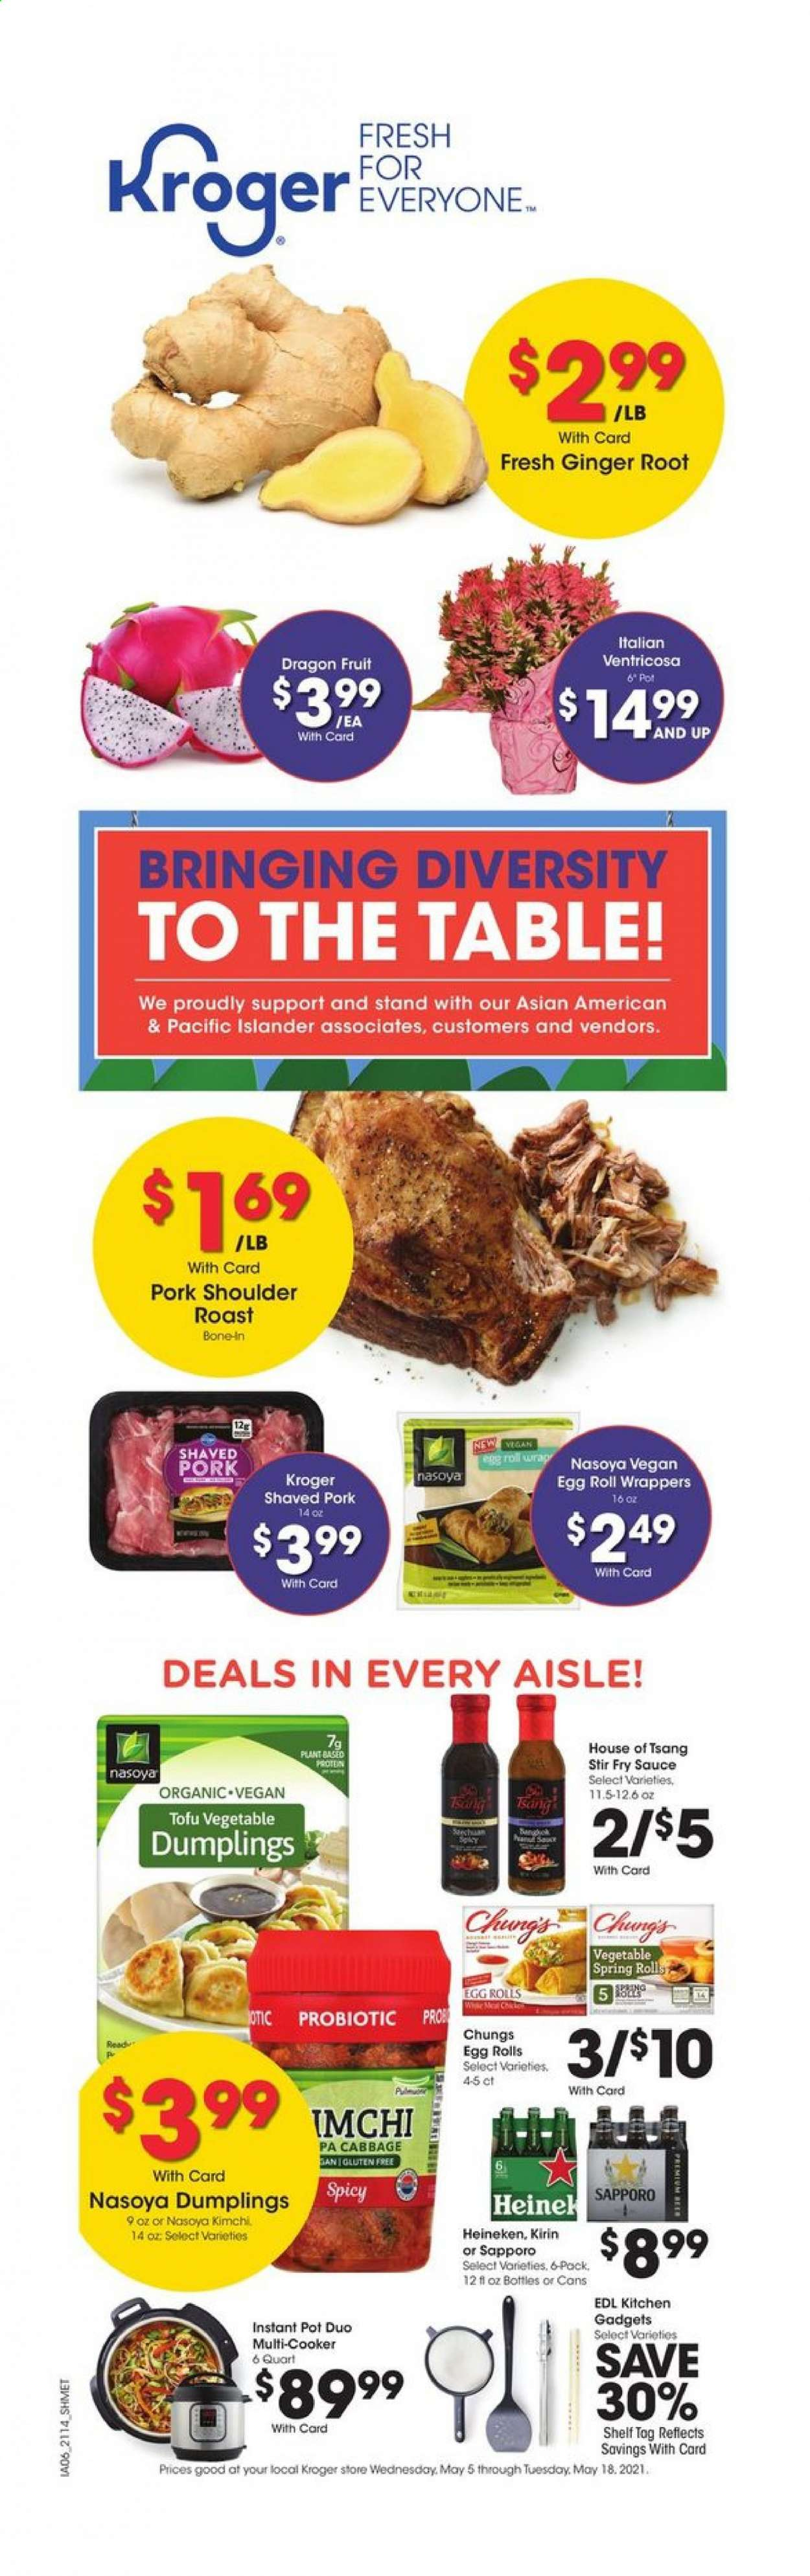 Kroger Diversity Ad from may 5 to 19 2021